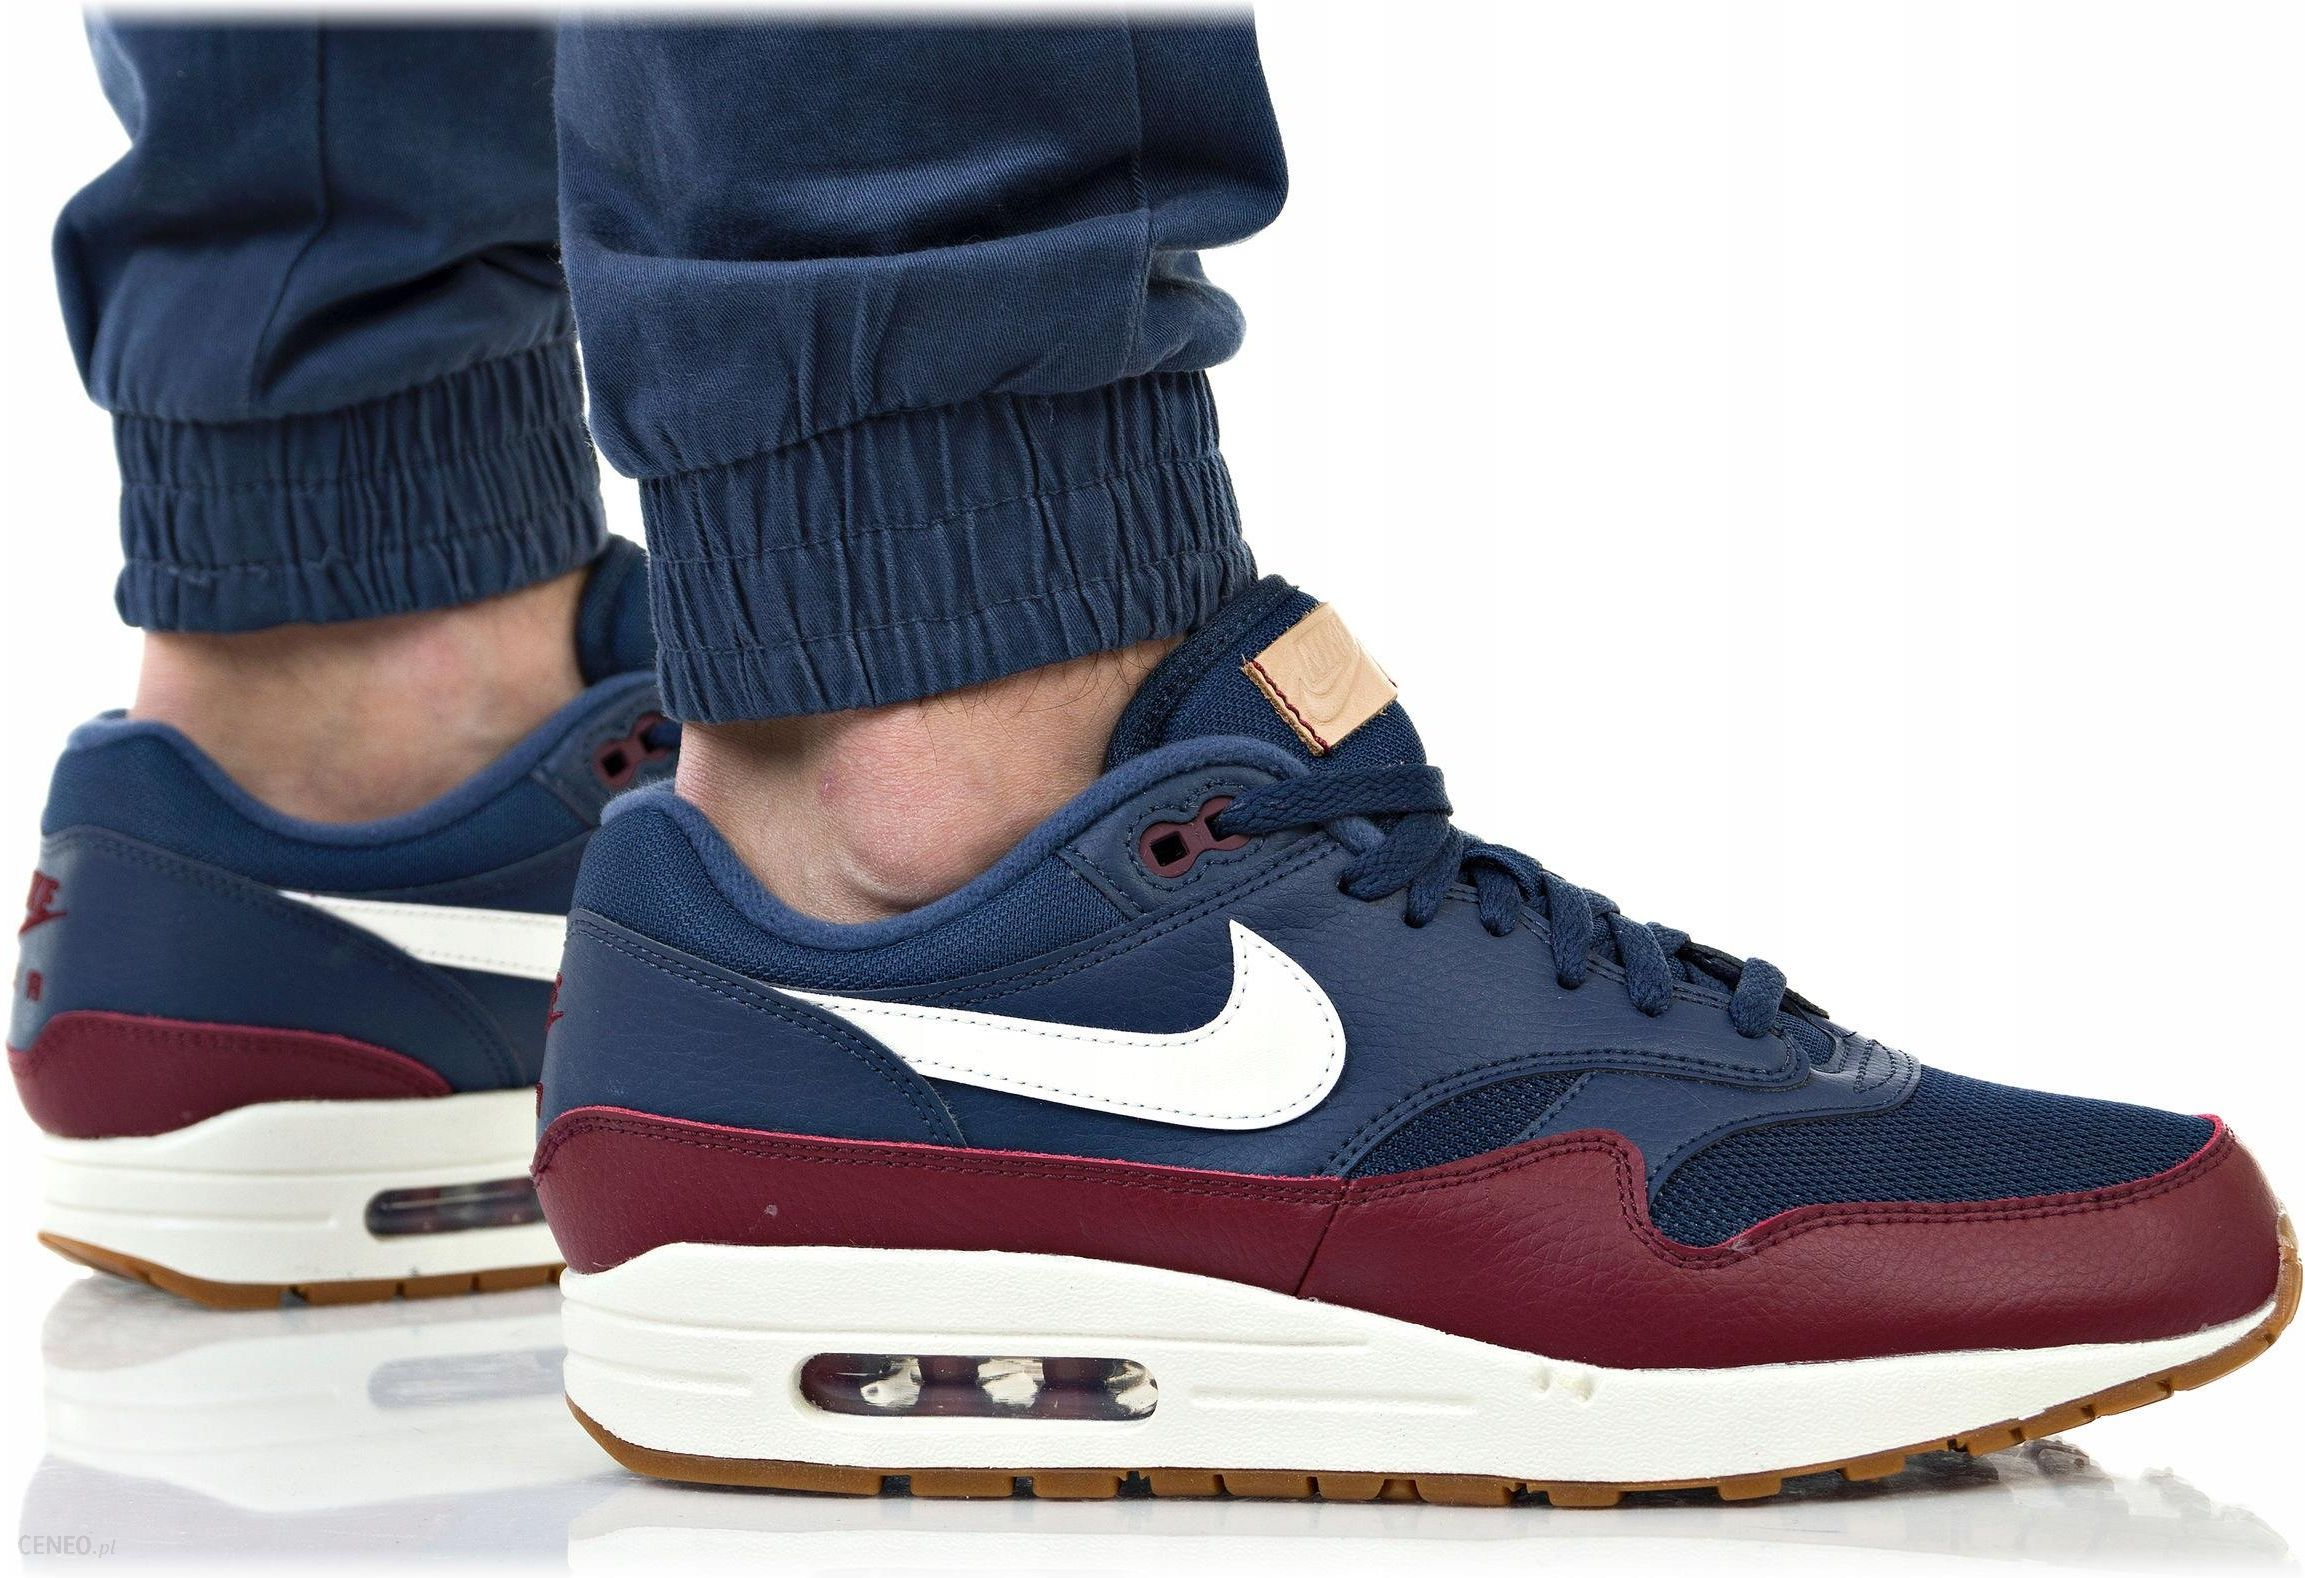 entire collection top quality the cheapest BUTY NIKE MĘSKIE AIR MAX 1 AH8145-400 GRANATOWE - Ceny i opinie - Ceneo.pl